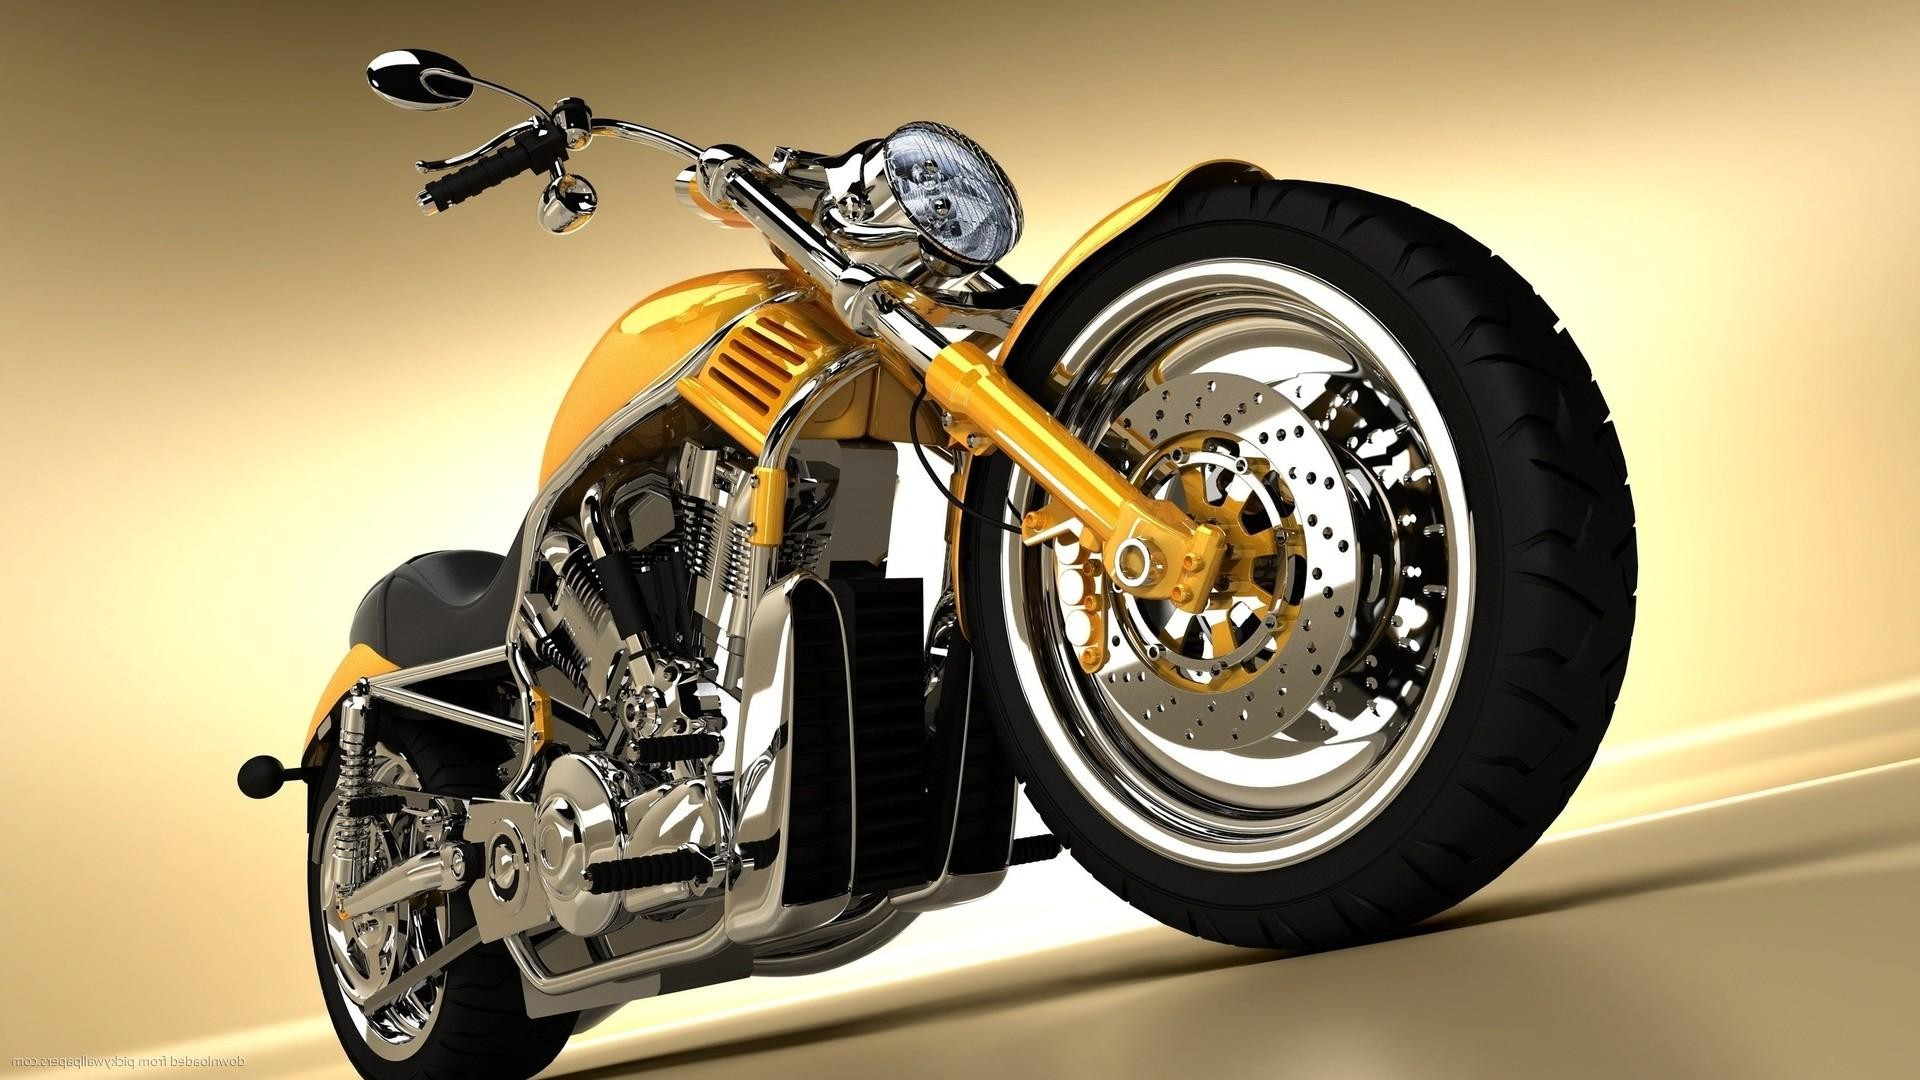 50 free harley davidson wallpapers hd for pc. Black Bedroom Furniture Sets. Home Design Ideas